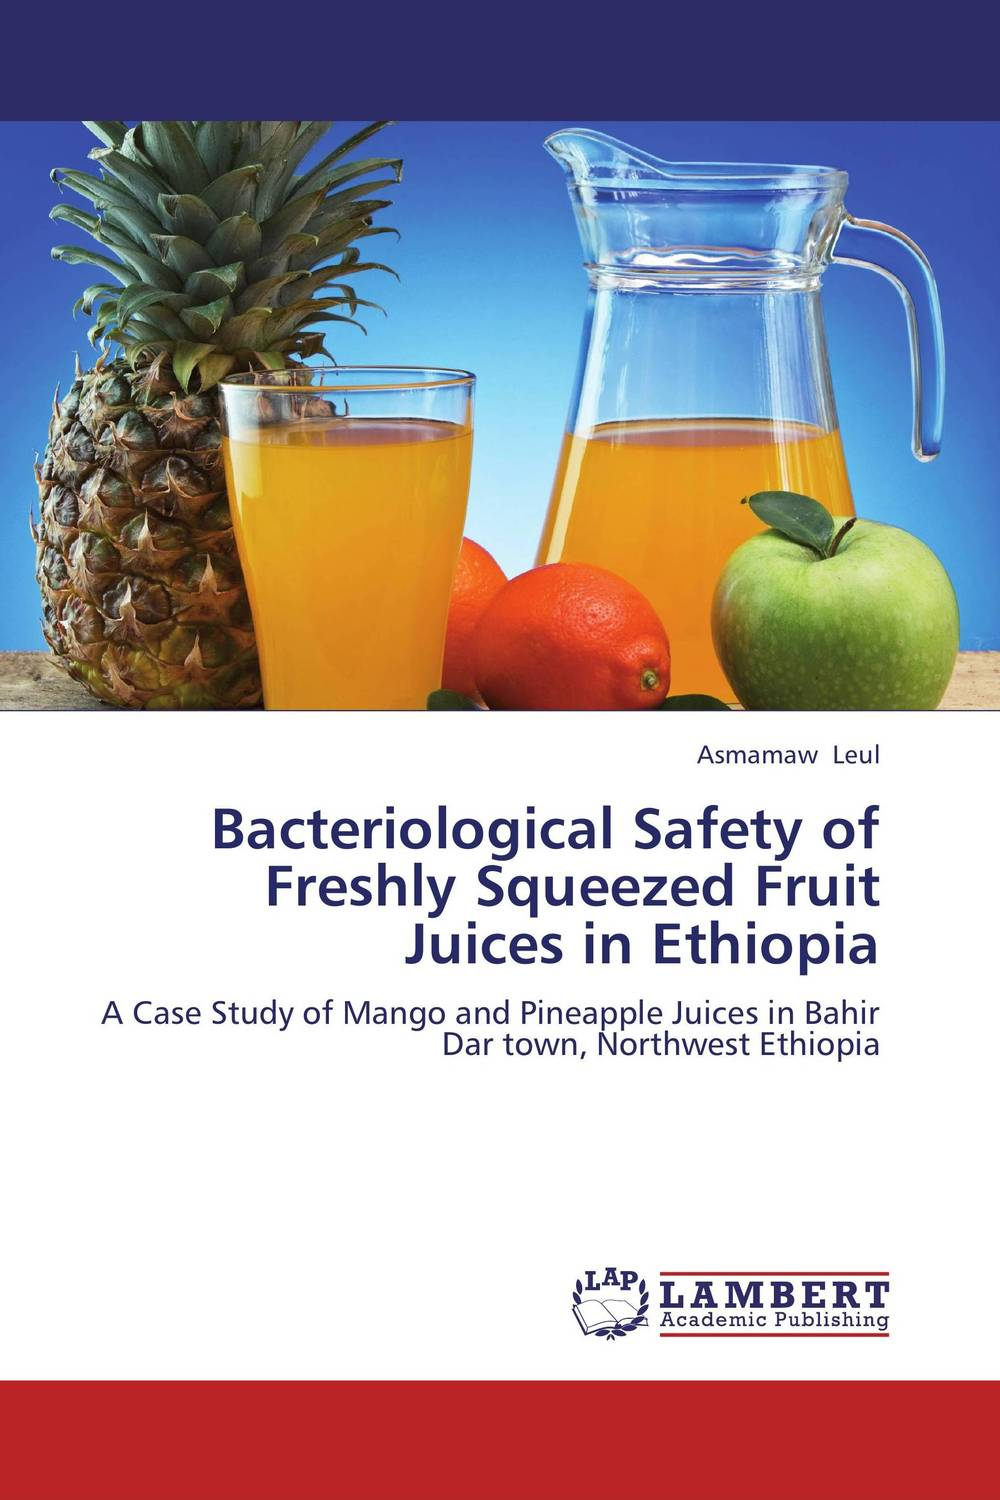 Bacteriological Safety of Freshly Squeezed Fruit Juices in Ethiopia quality control and safety of fruit juices nectars and dairy products